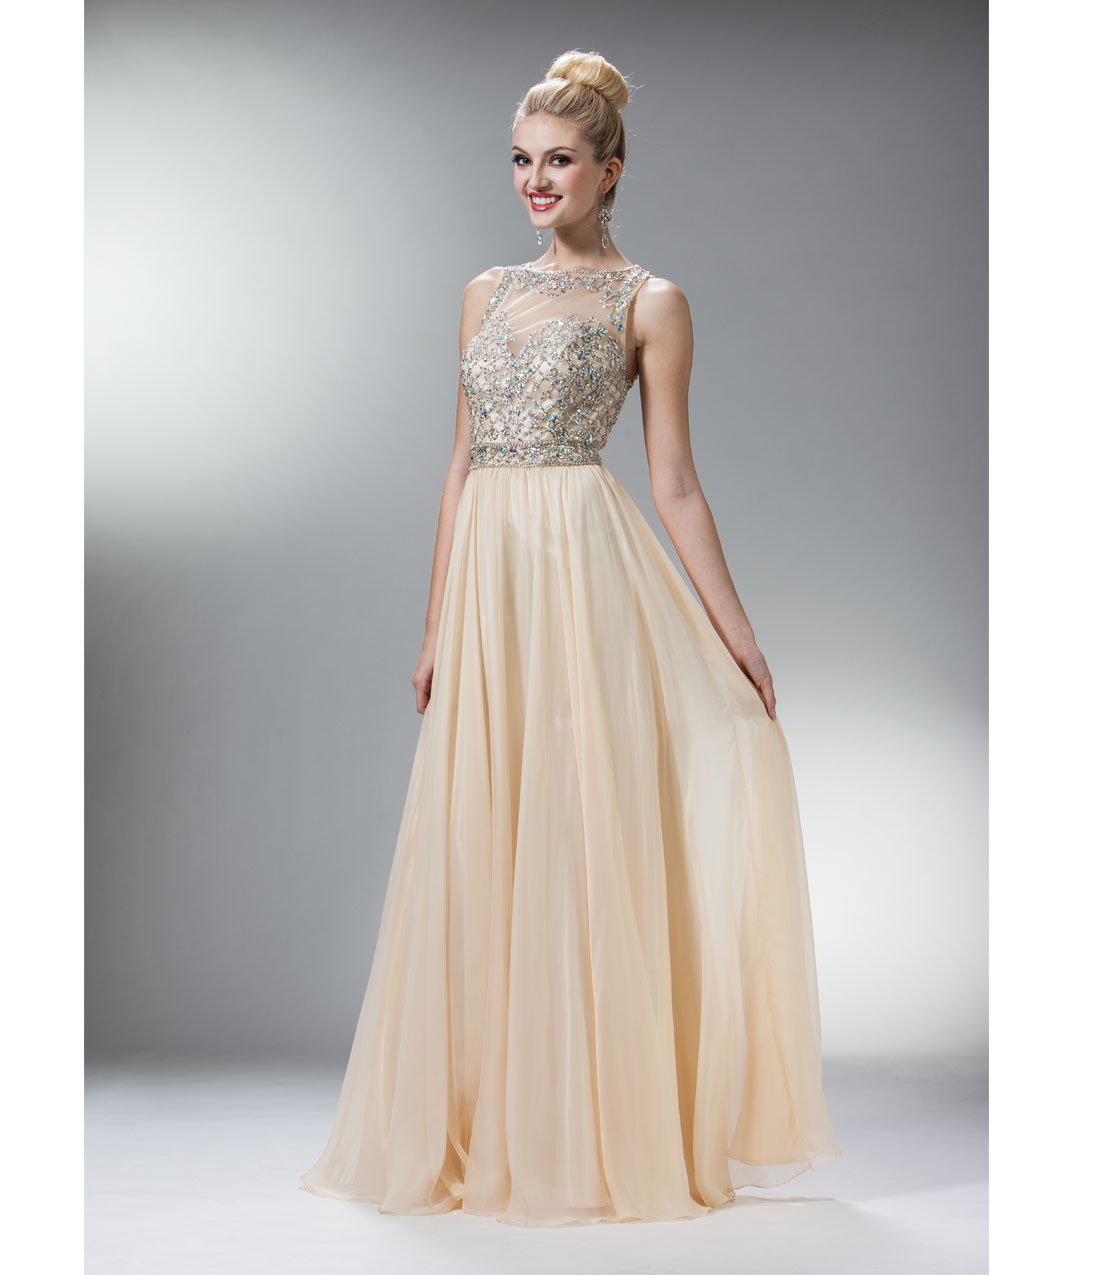 Prom Dresses - Champagne Chiffon & Stone Criss Cross Gown - Unique ...